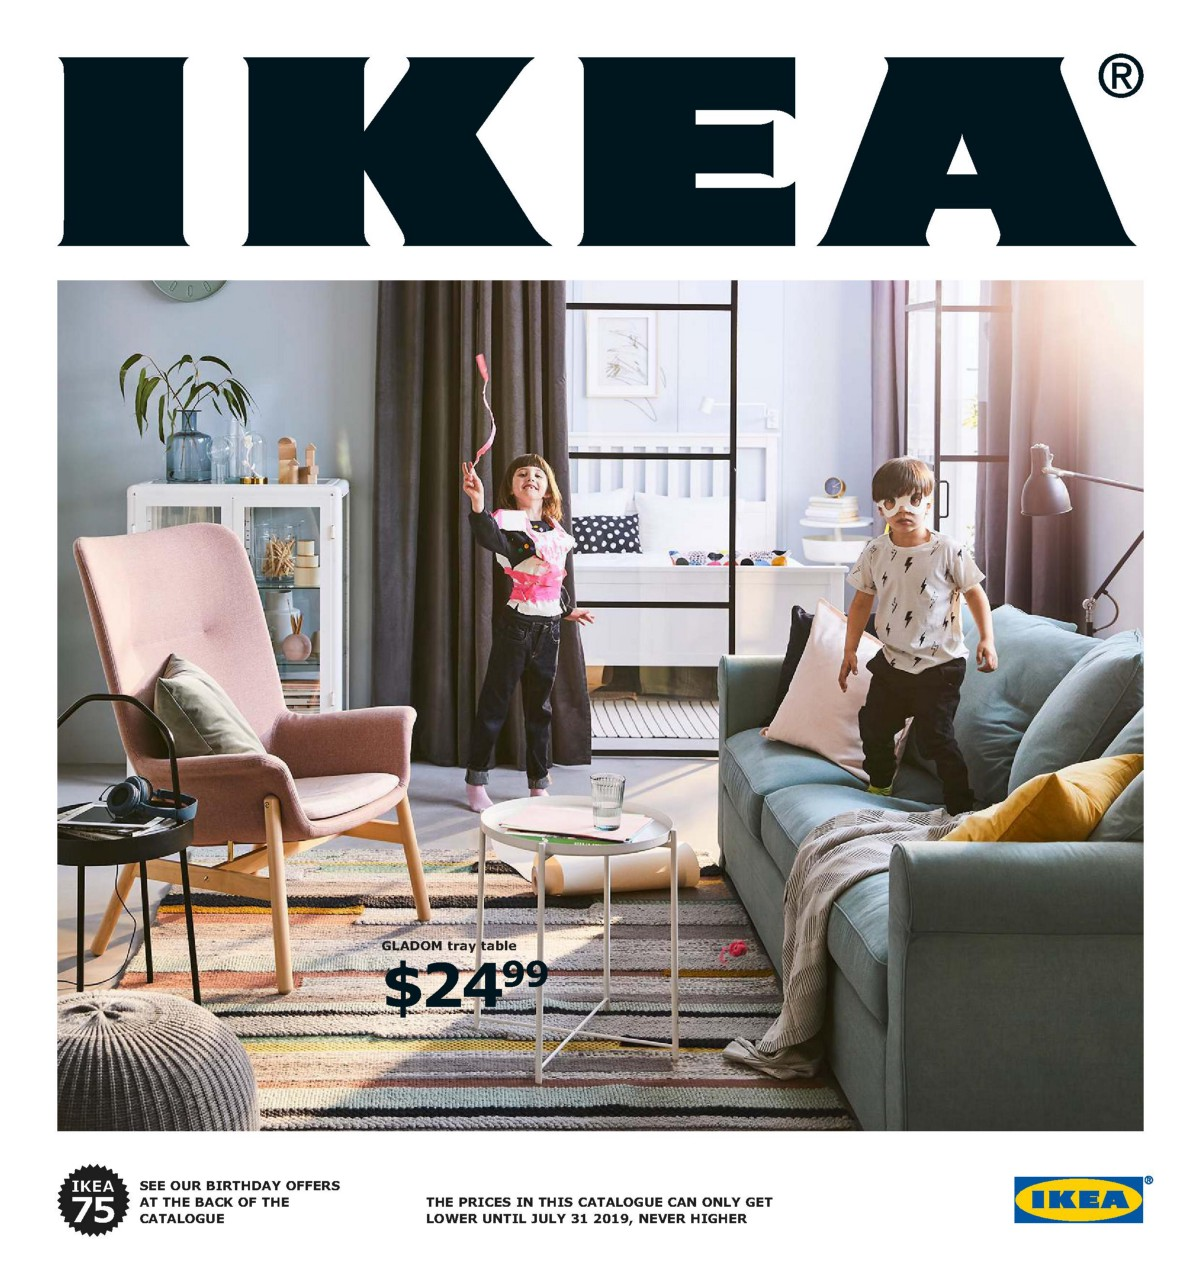 How IKEA Allows Us to Dream: Reviewing the 8 IKEA Canada